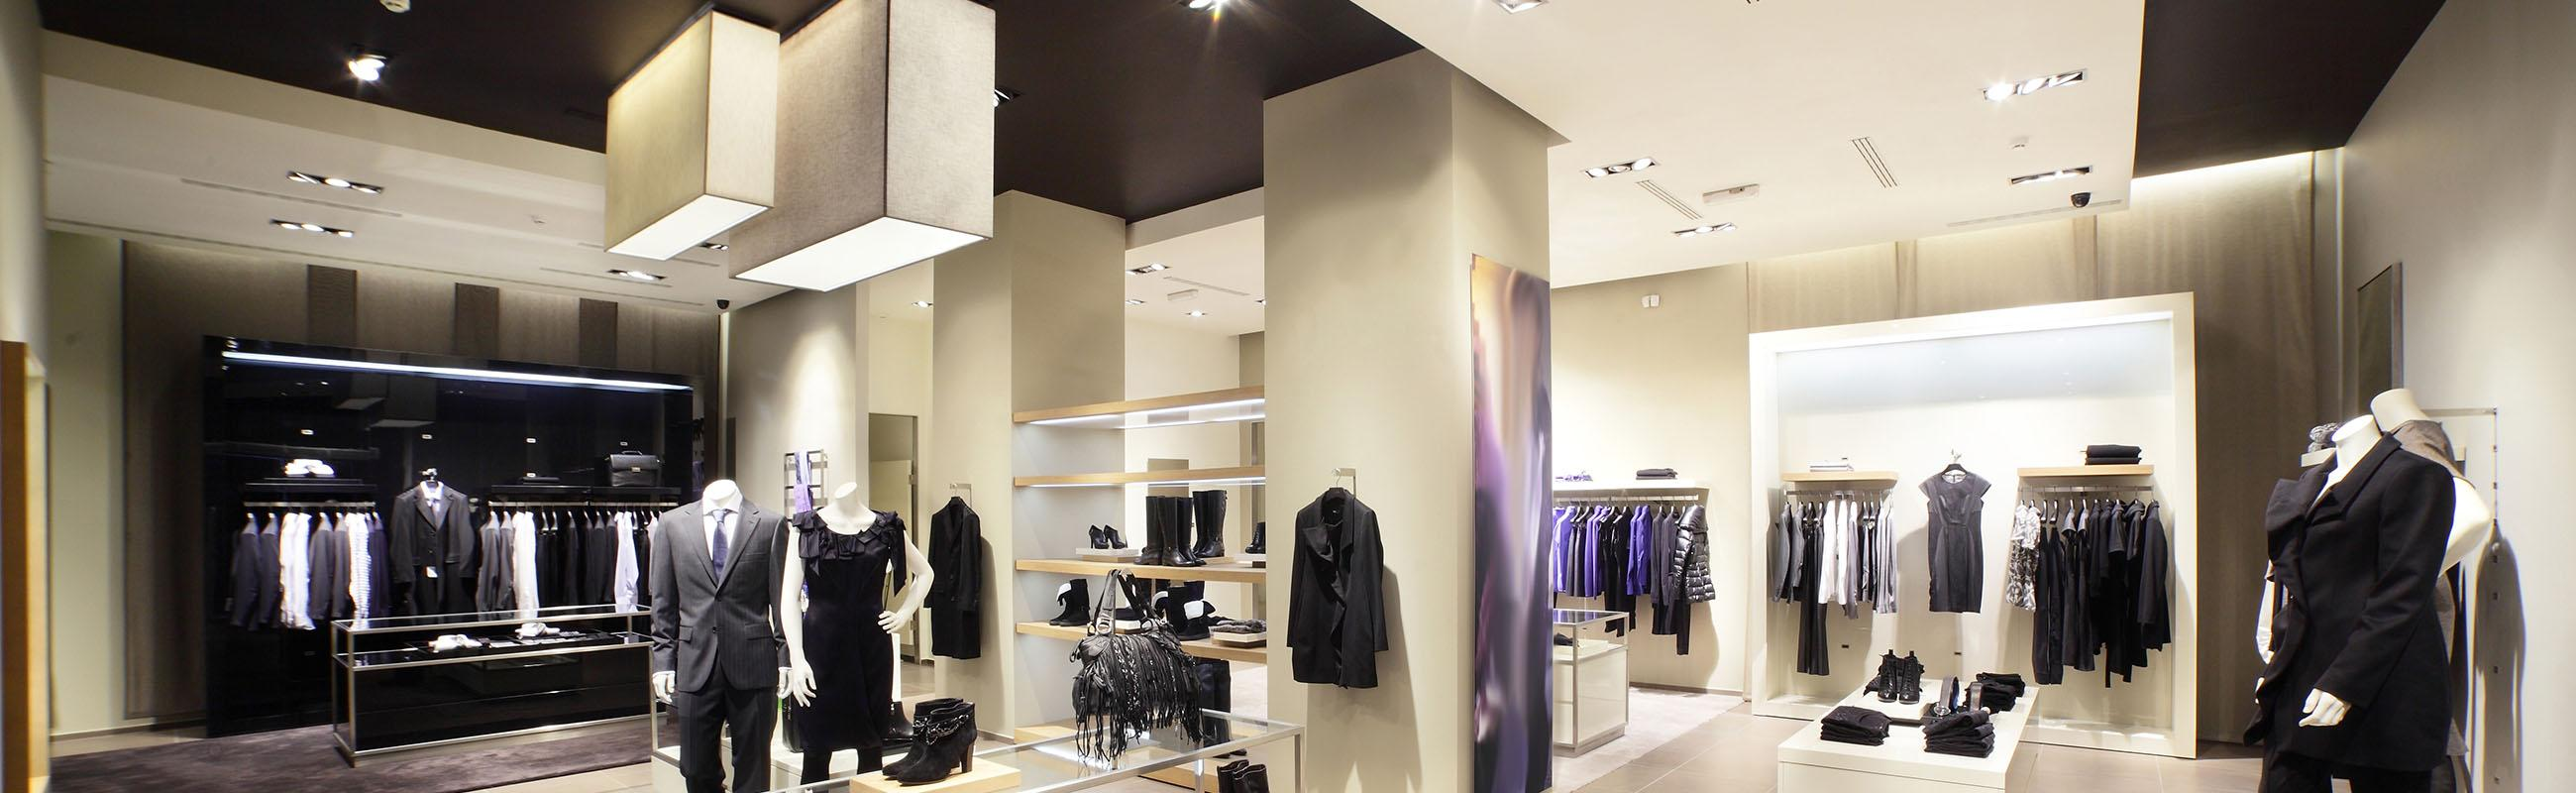 Lighting for retail units